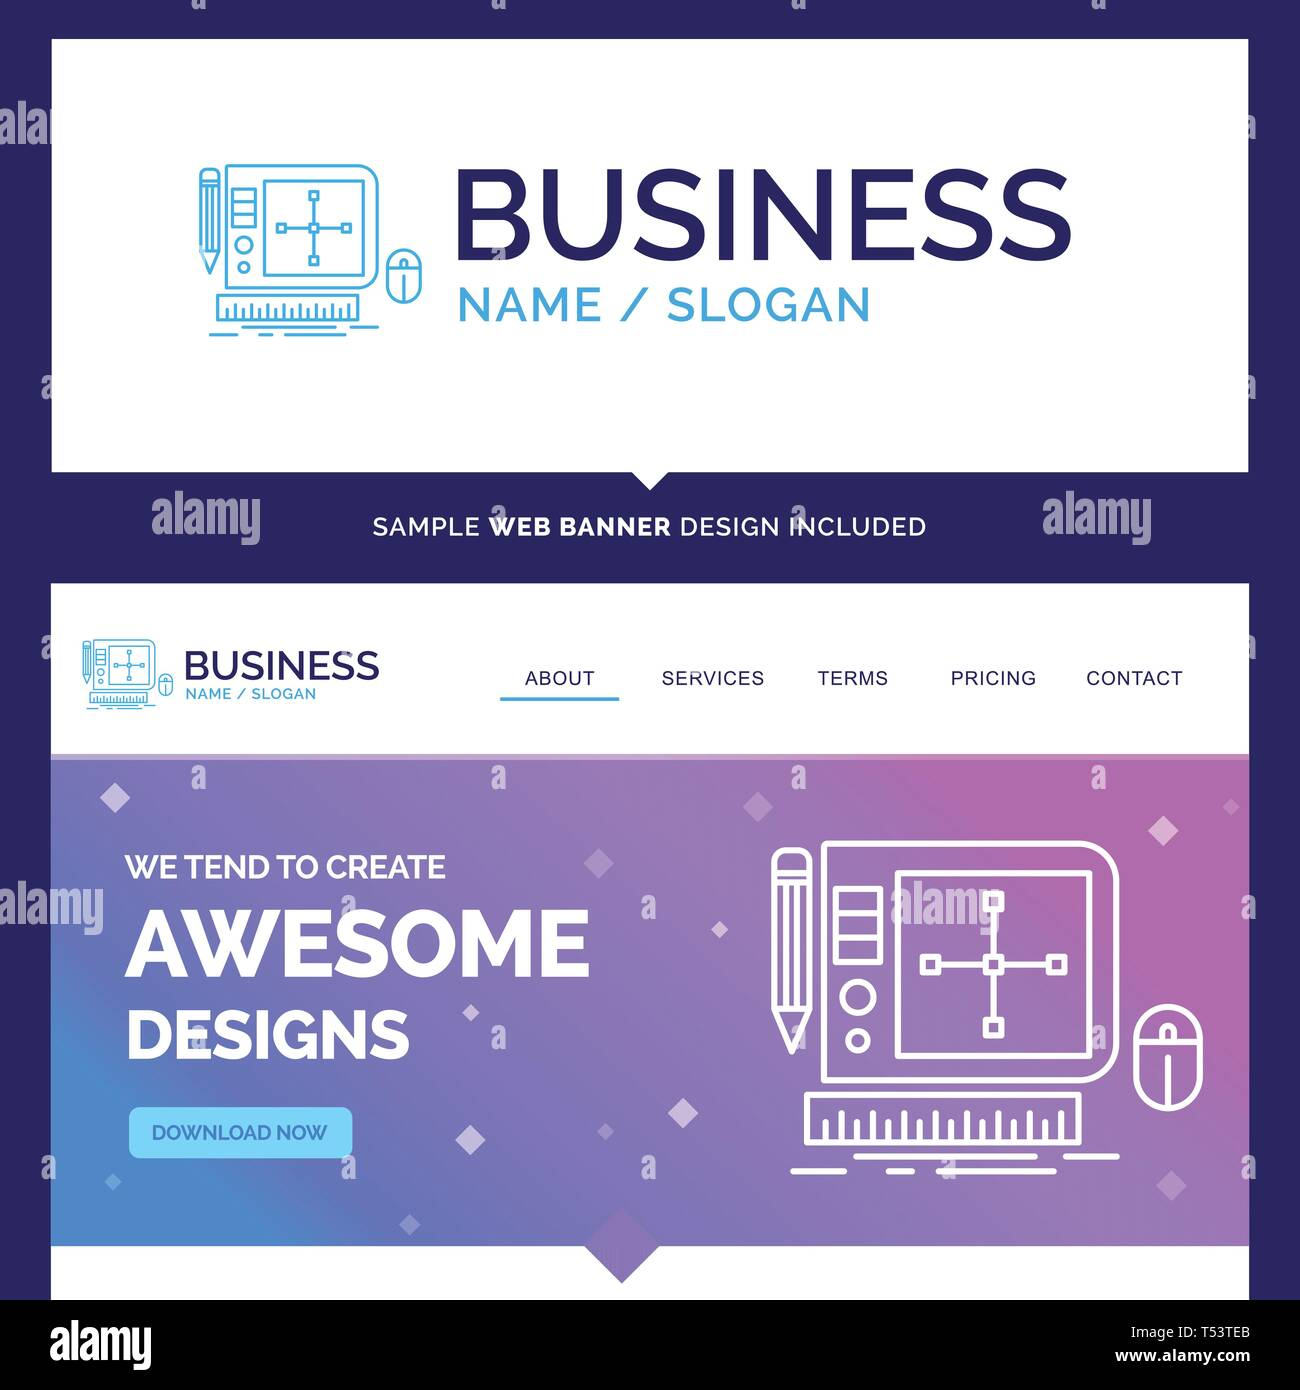 Beautiful Business Concept Brand Name Design Graphic Tool Software Web Designing Logo Design And Pink And Blue Background Website Header Design Te Stock Vector Image Art Alamy